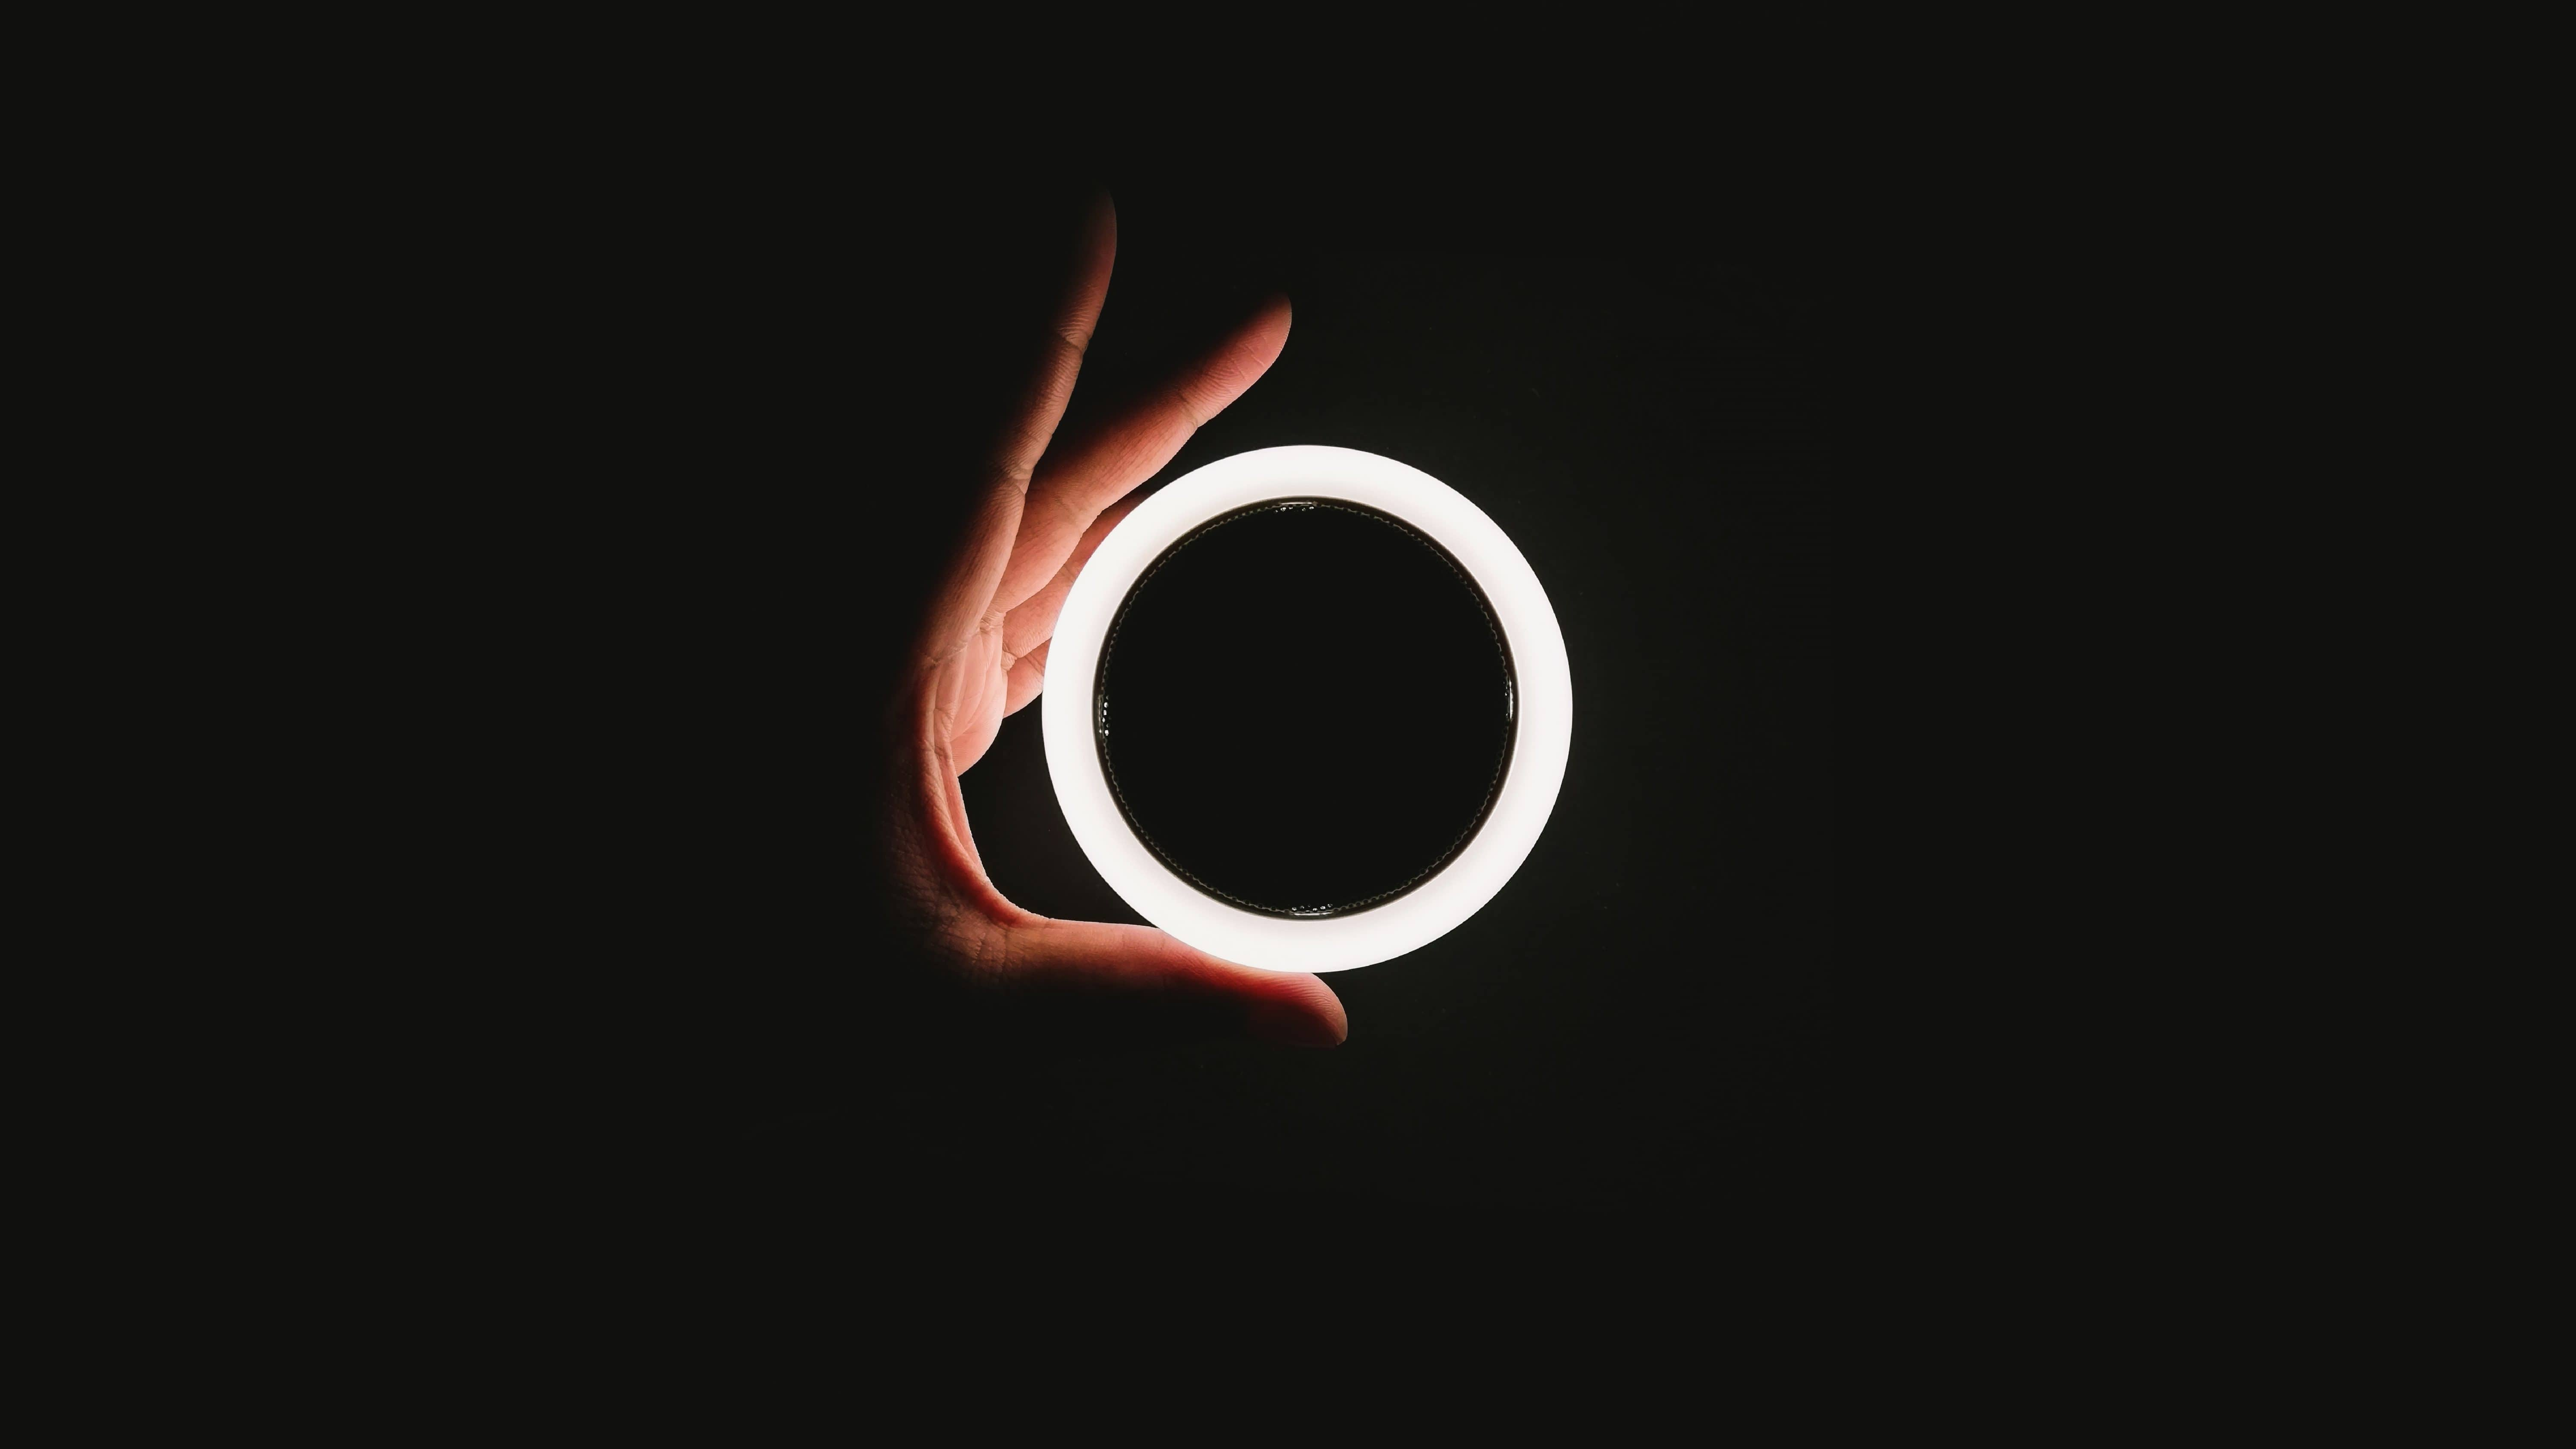 A bright loop in darkness